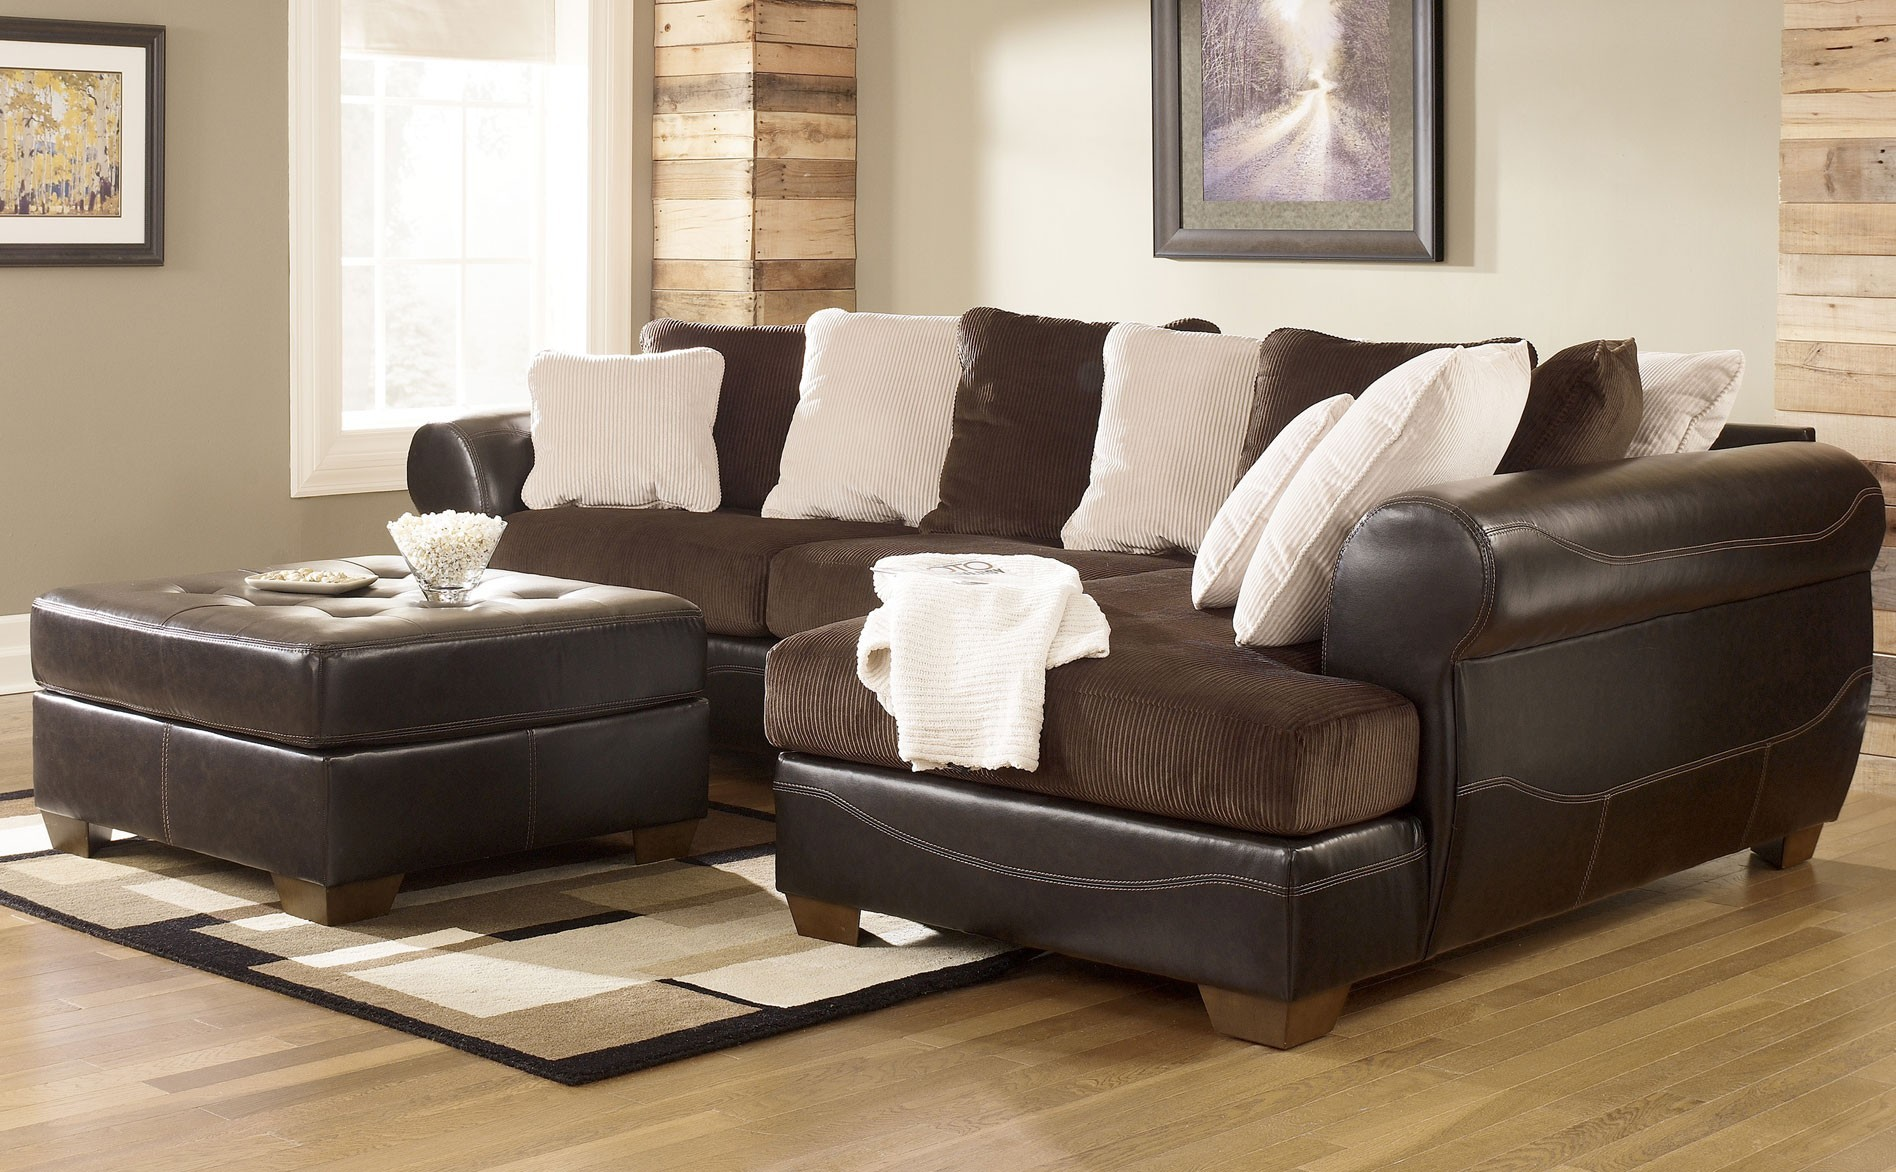 Inspirational Sectional Sofas Ashley Furniture Decoration Modern Sofa Design Ideas